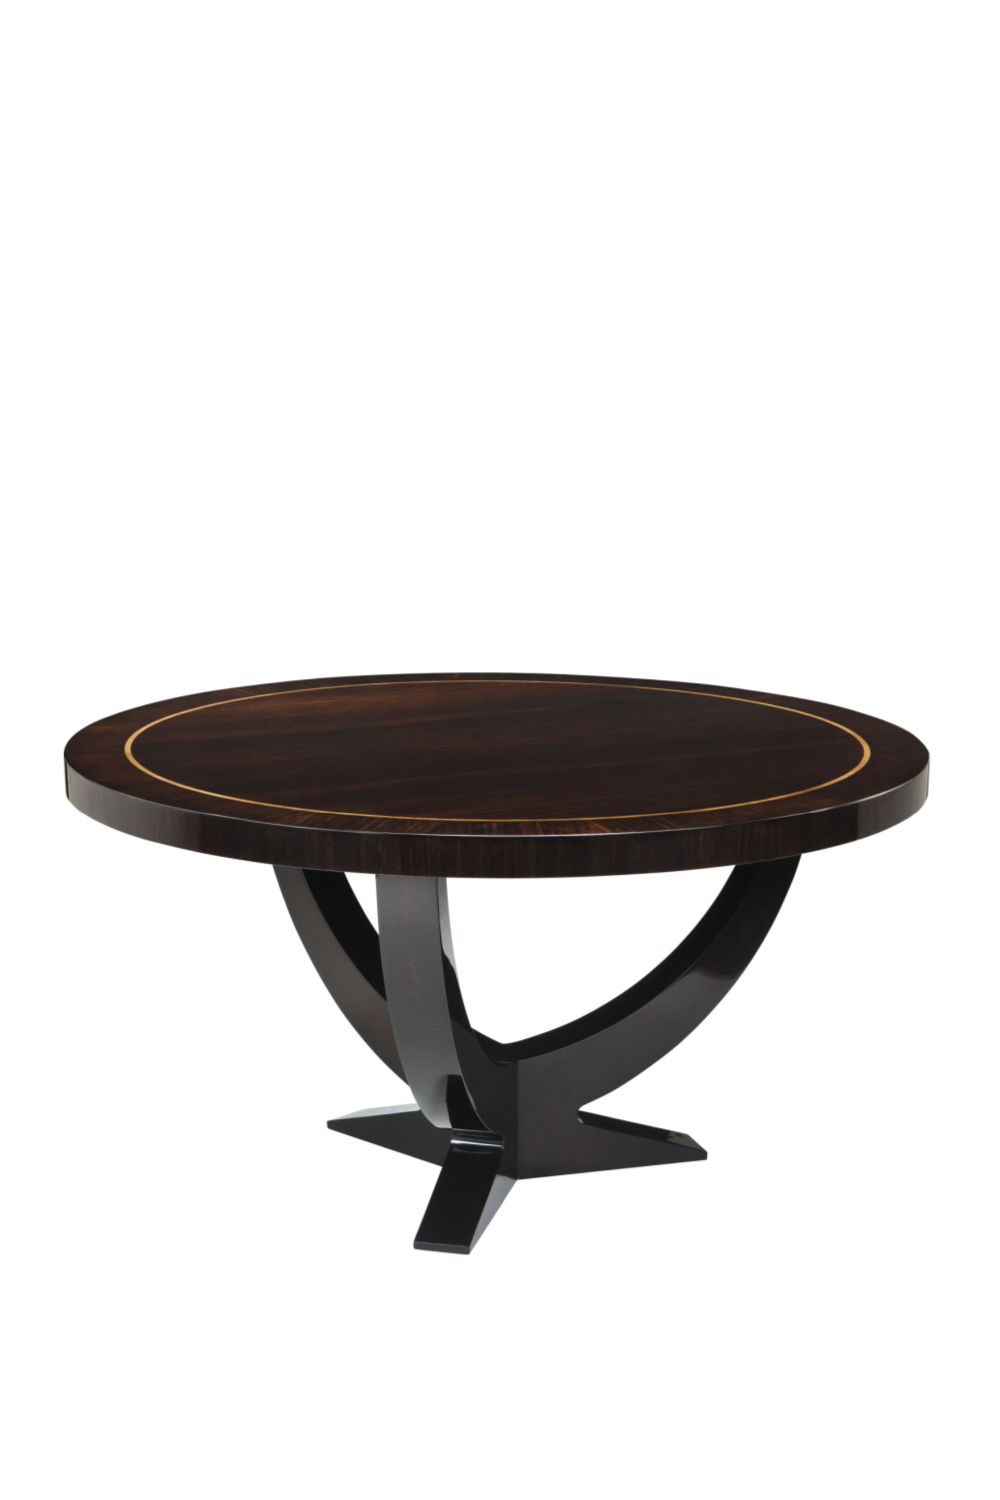 Round Dining Table | Eichholtz Umberto S